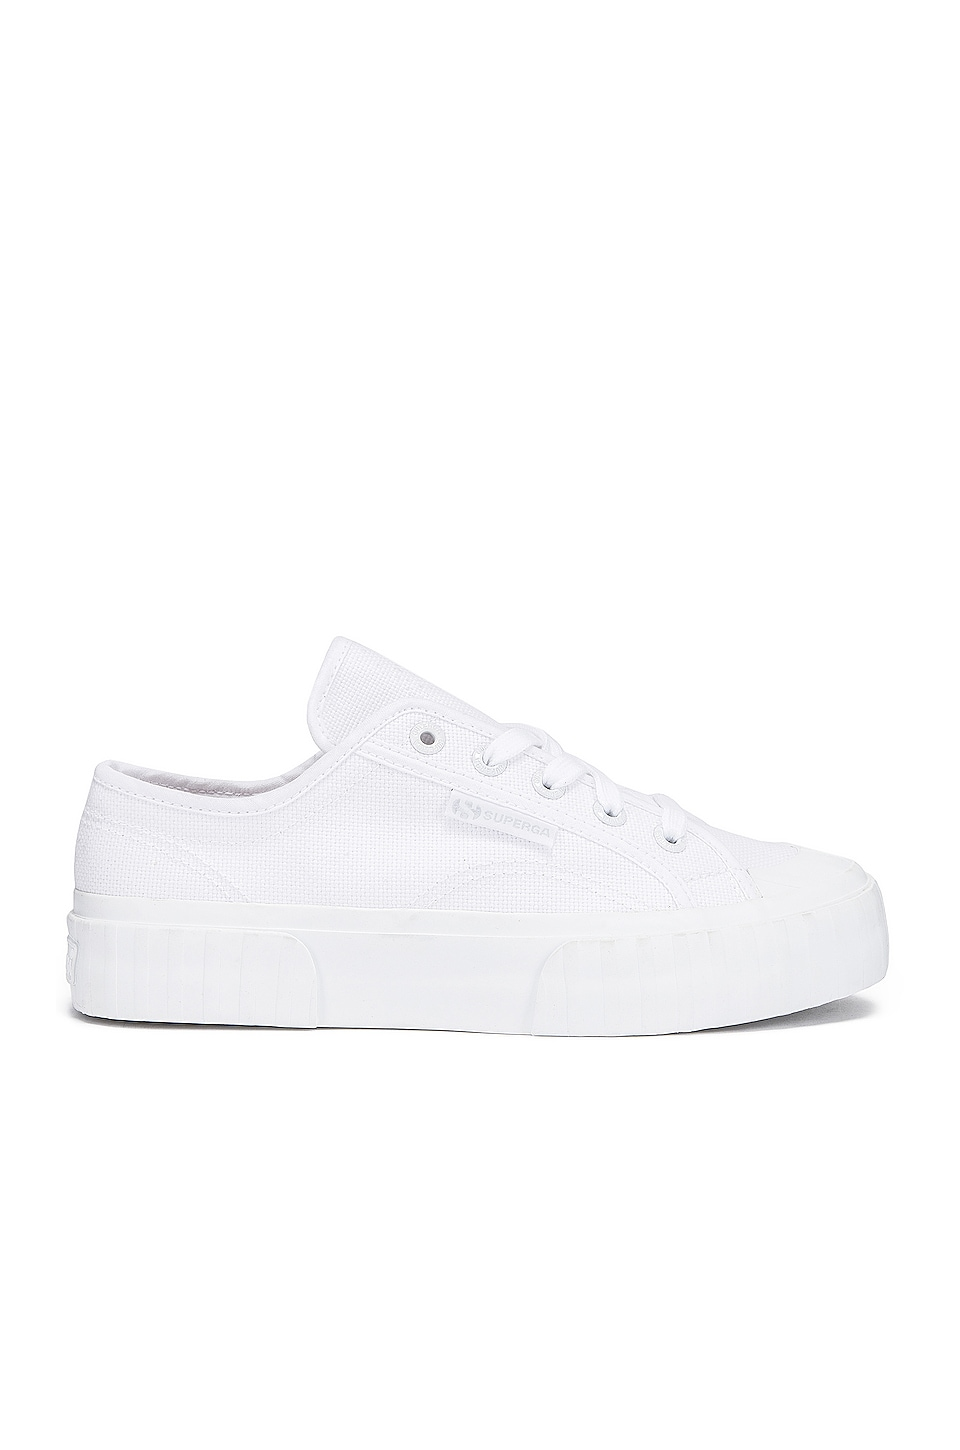 Superga 2630 COTU Sneaker in Total White